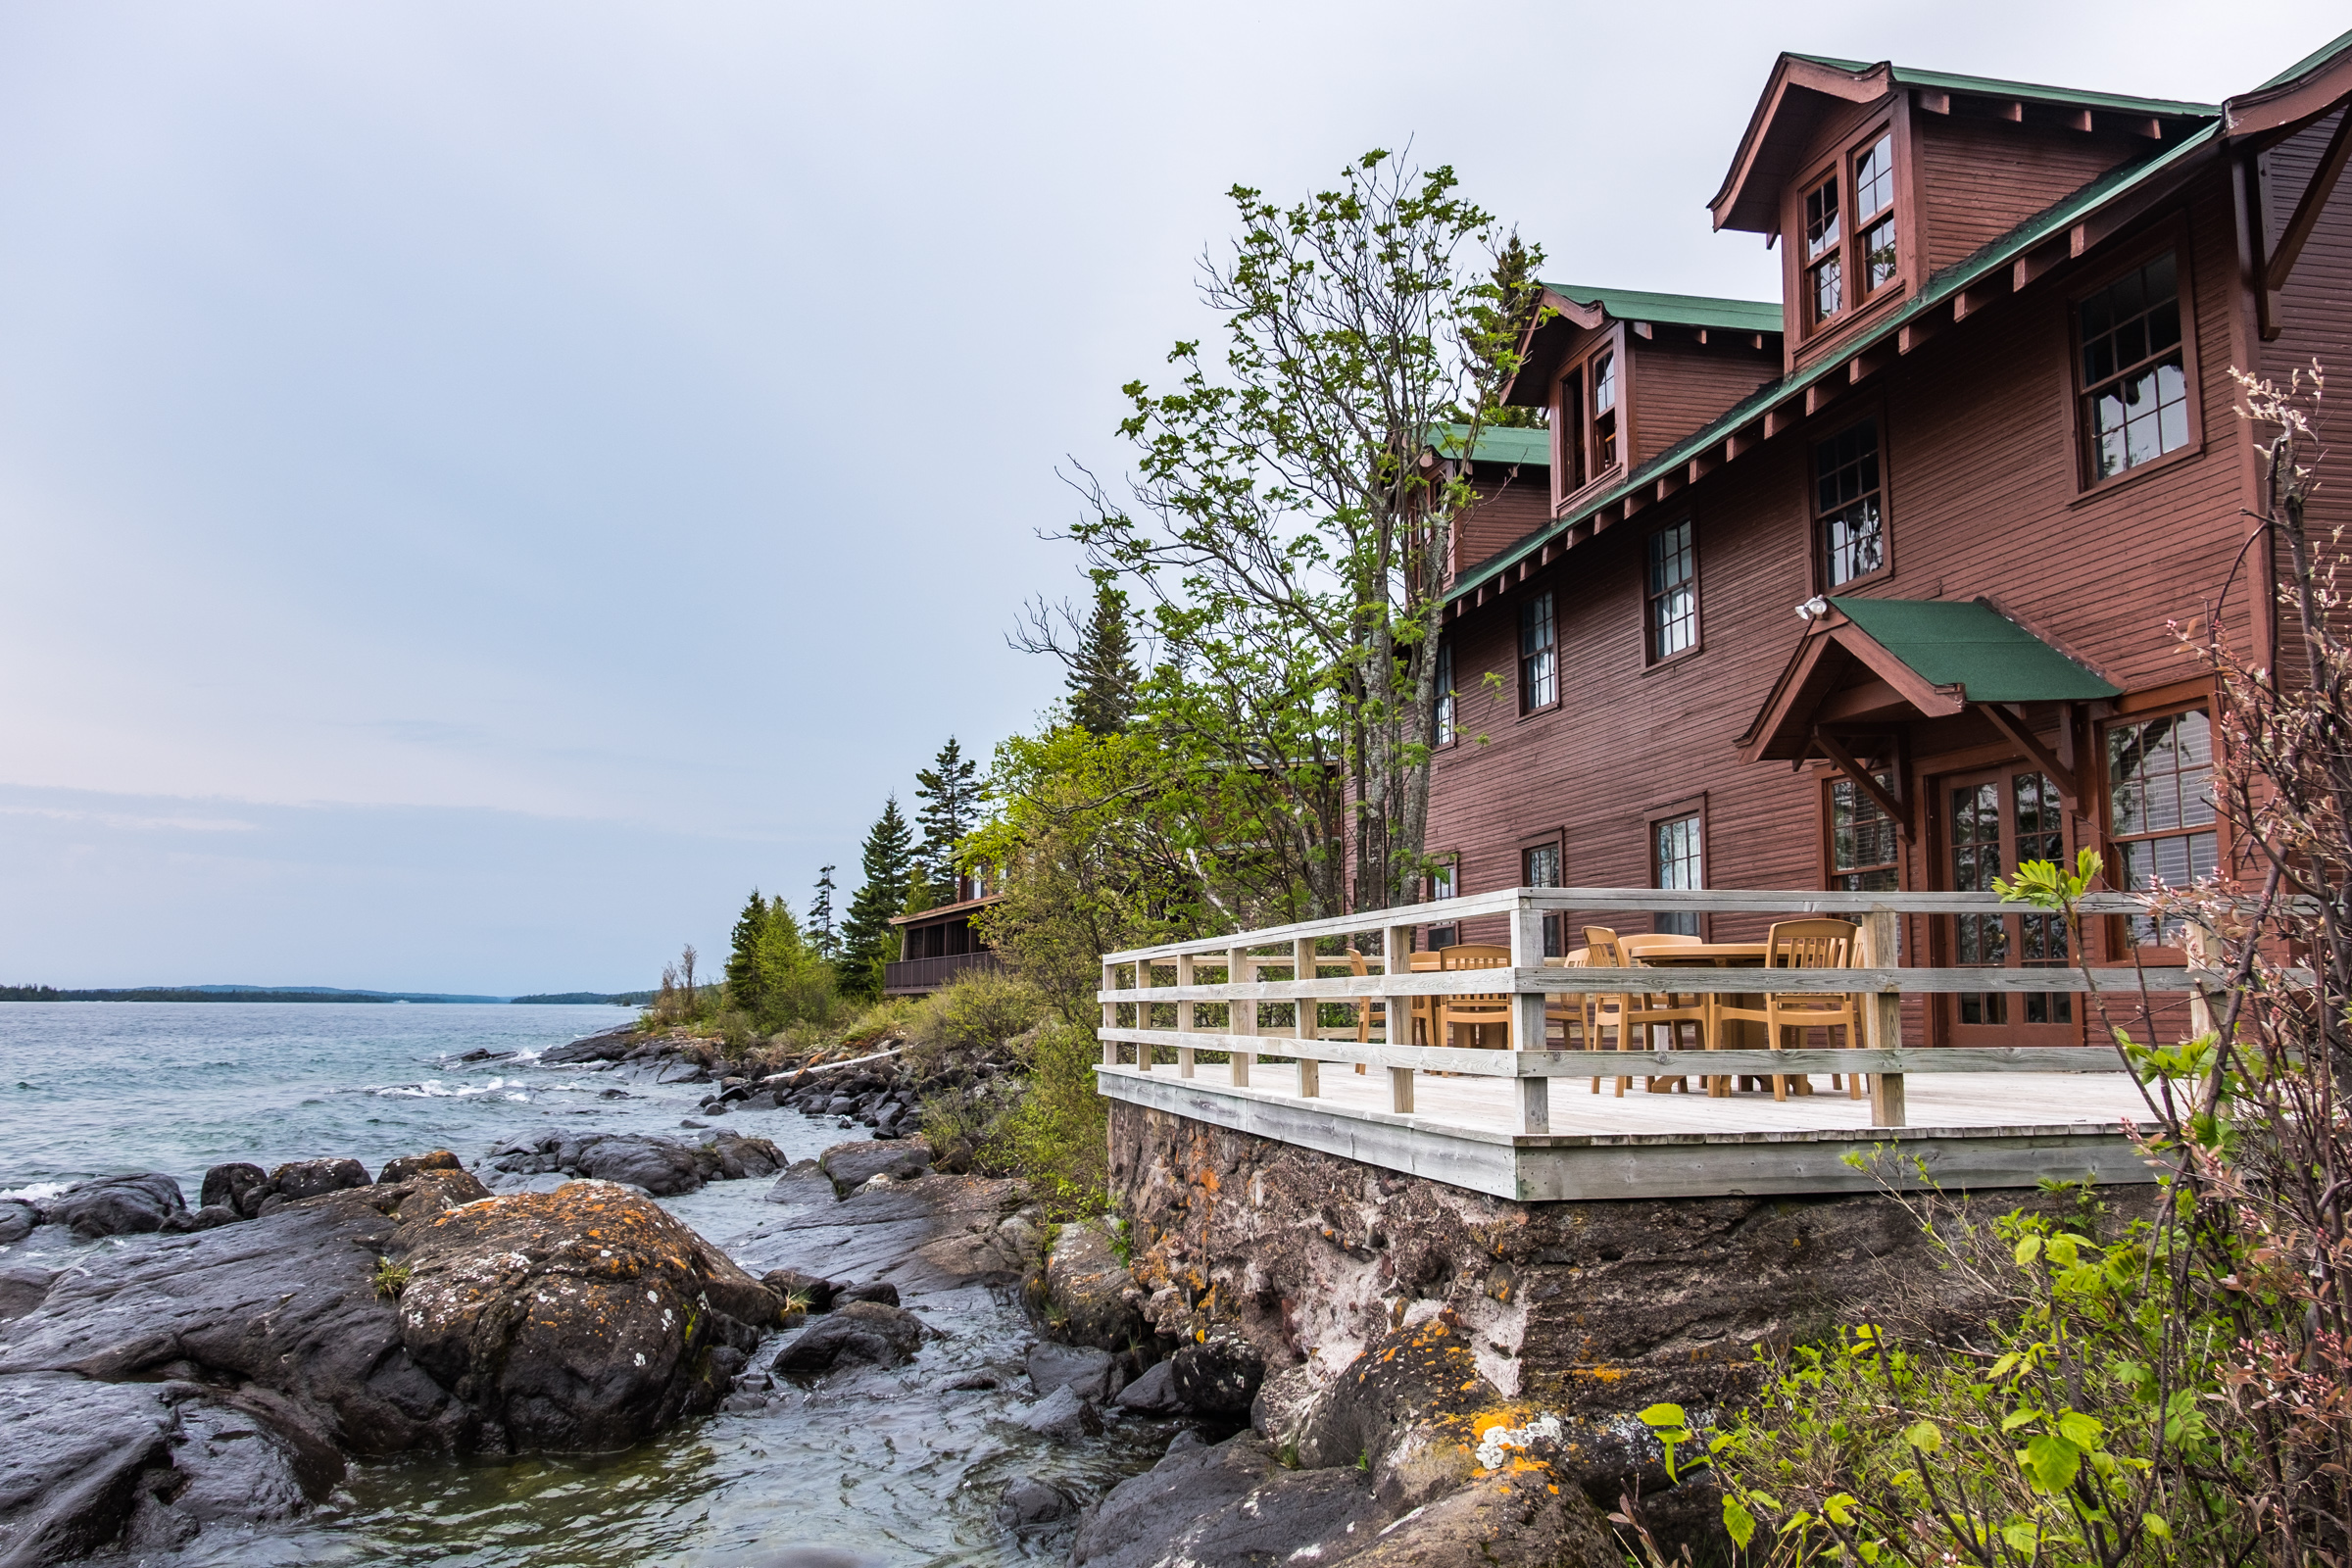 Exterior of a Housekeeping Cabin at the Rock Harbor Lodge in Isle Royale.